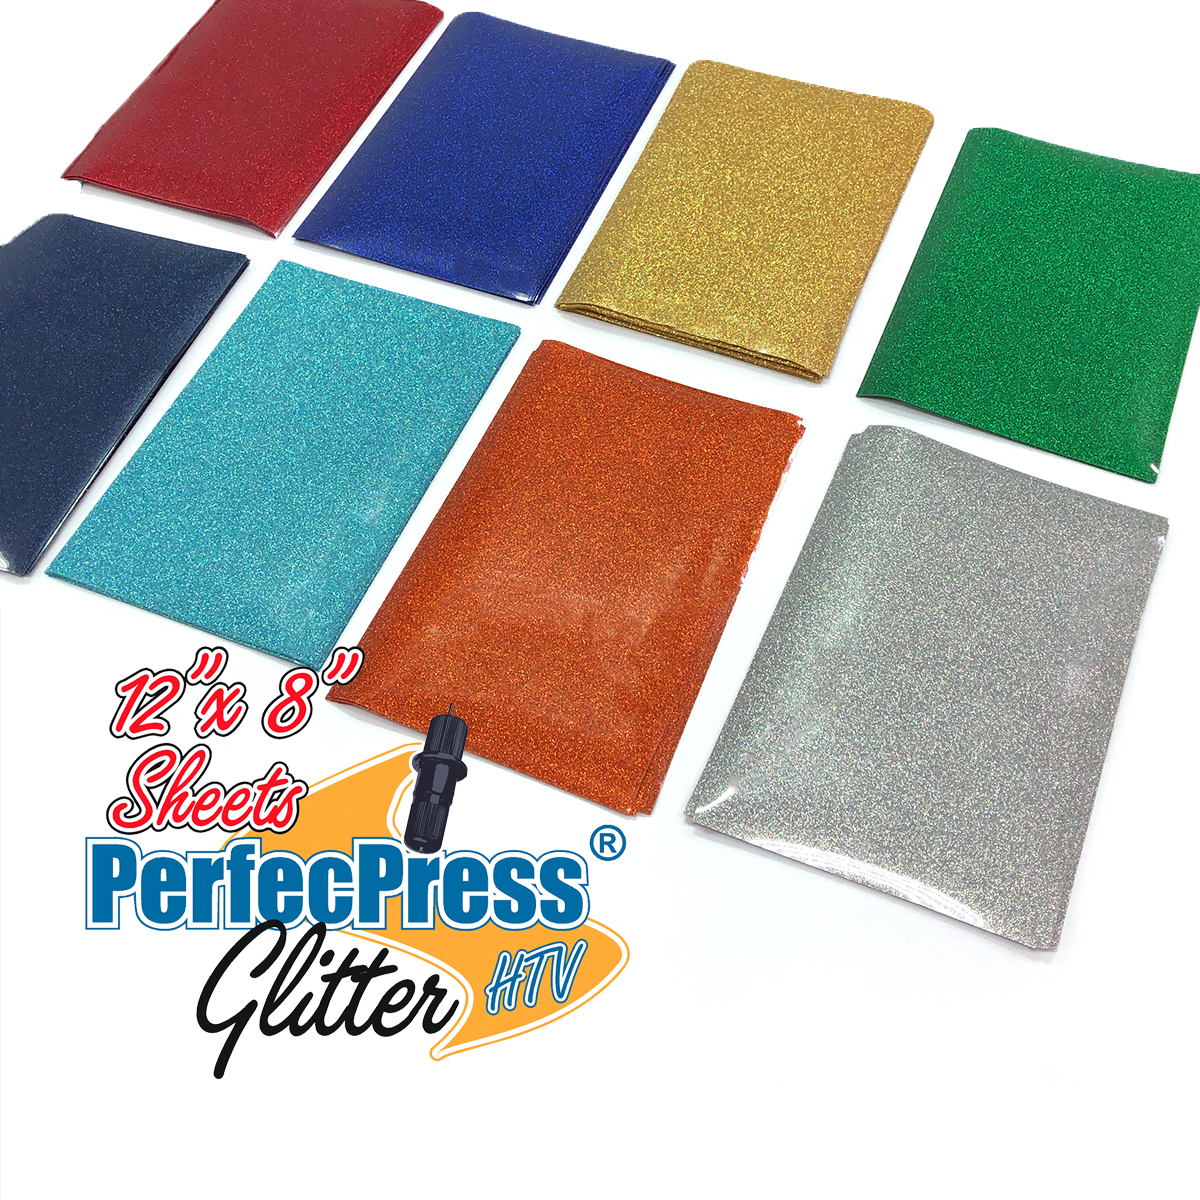 "PerfecPress Glitter 12"" x 8"" Sheet THUMBNAIL"